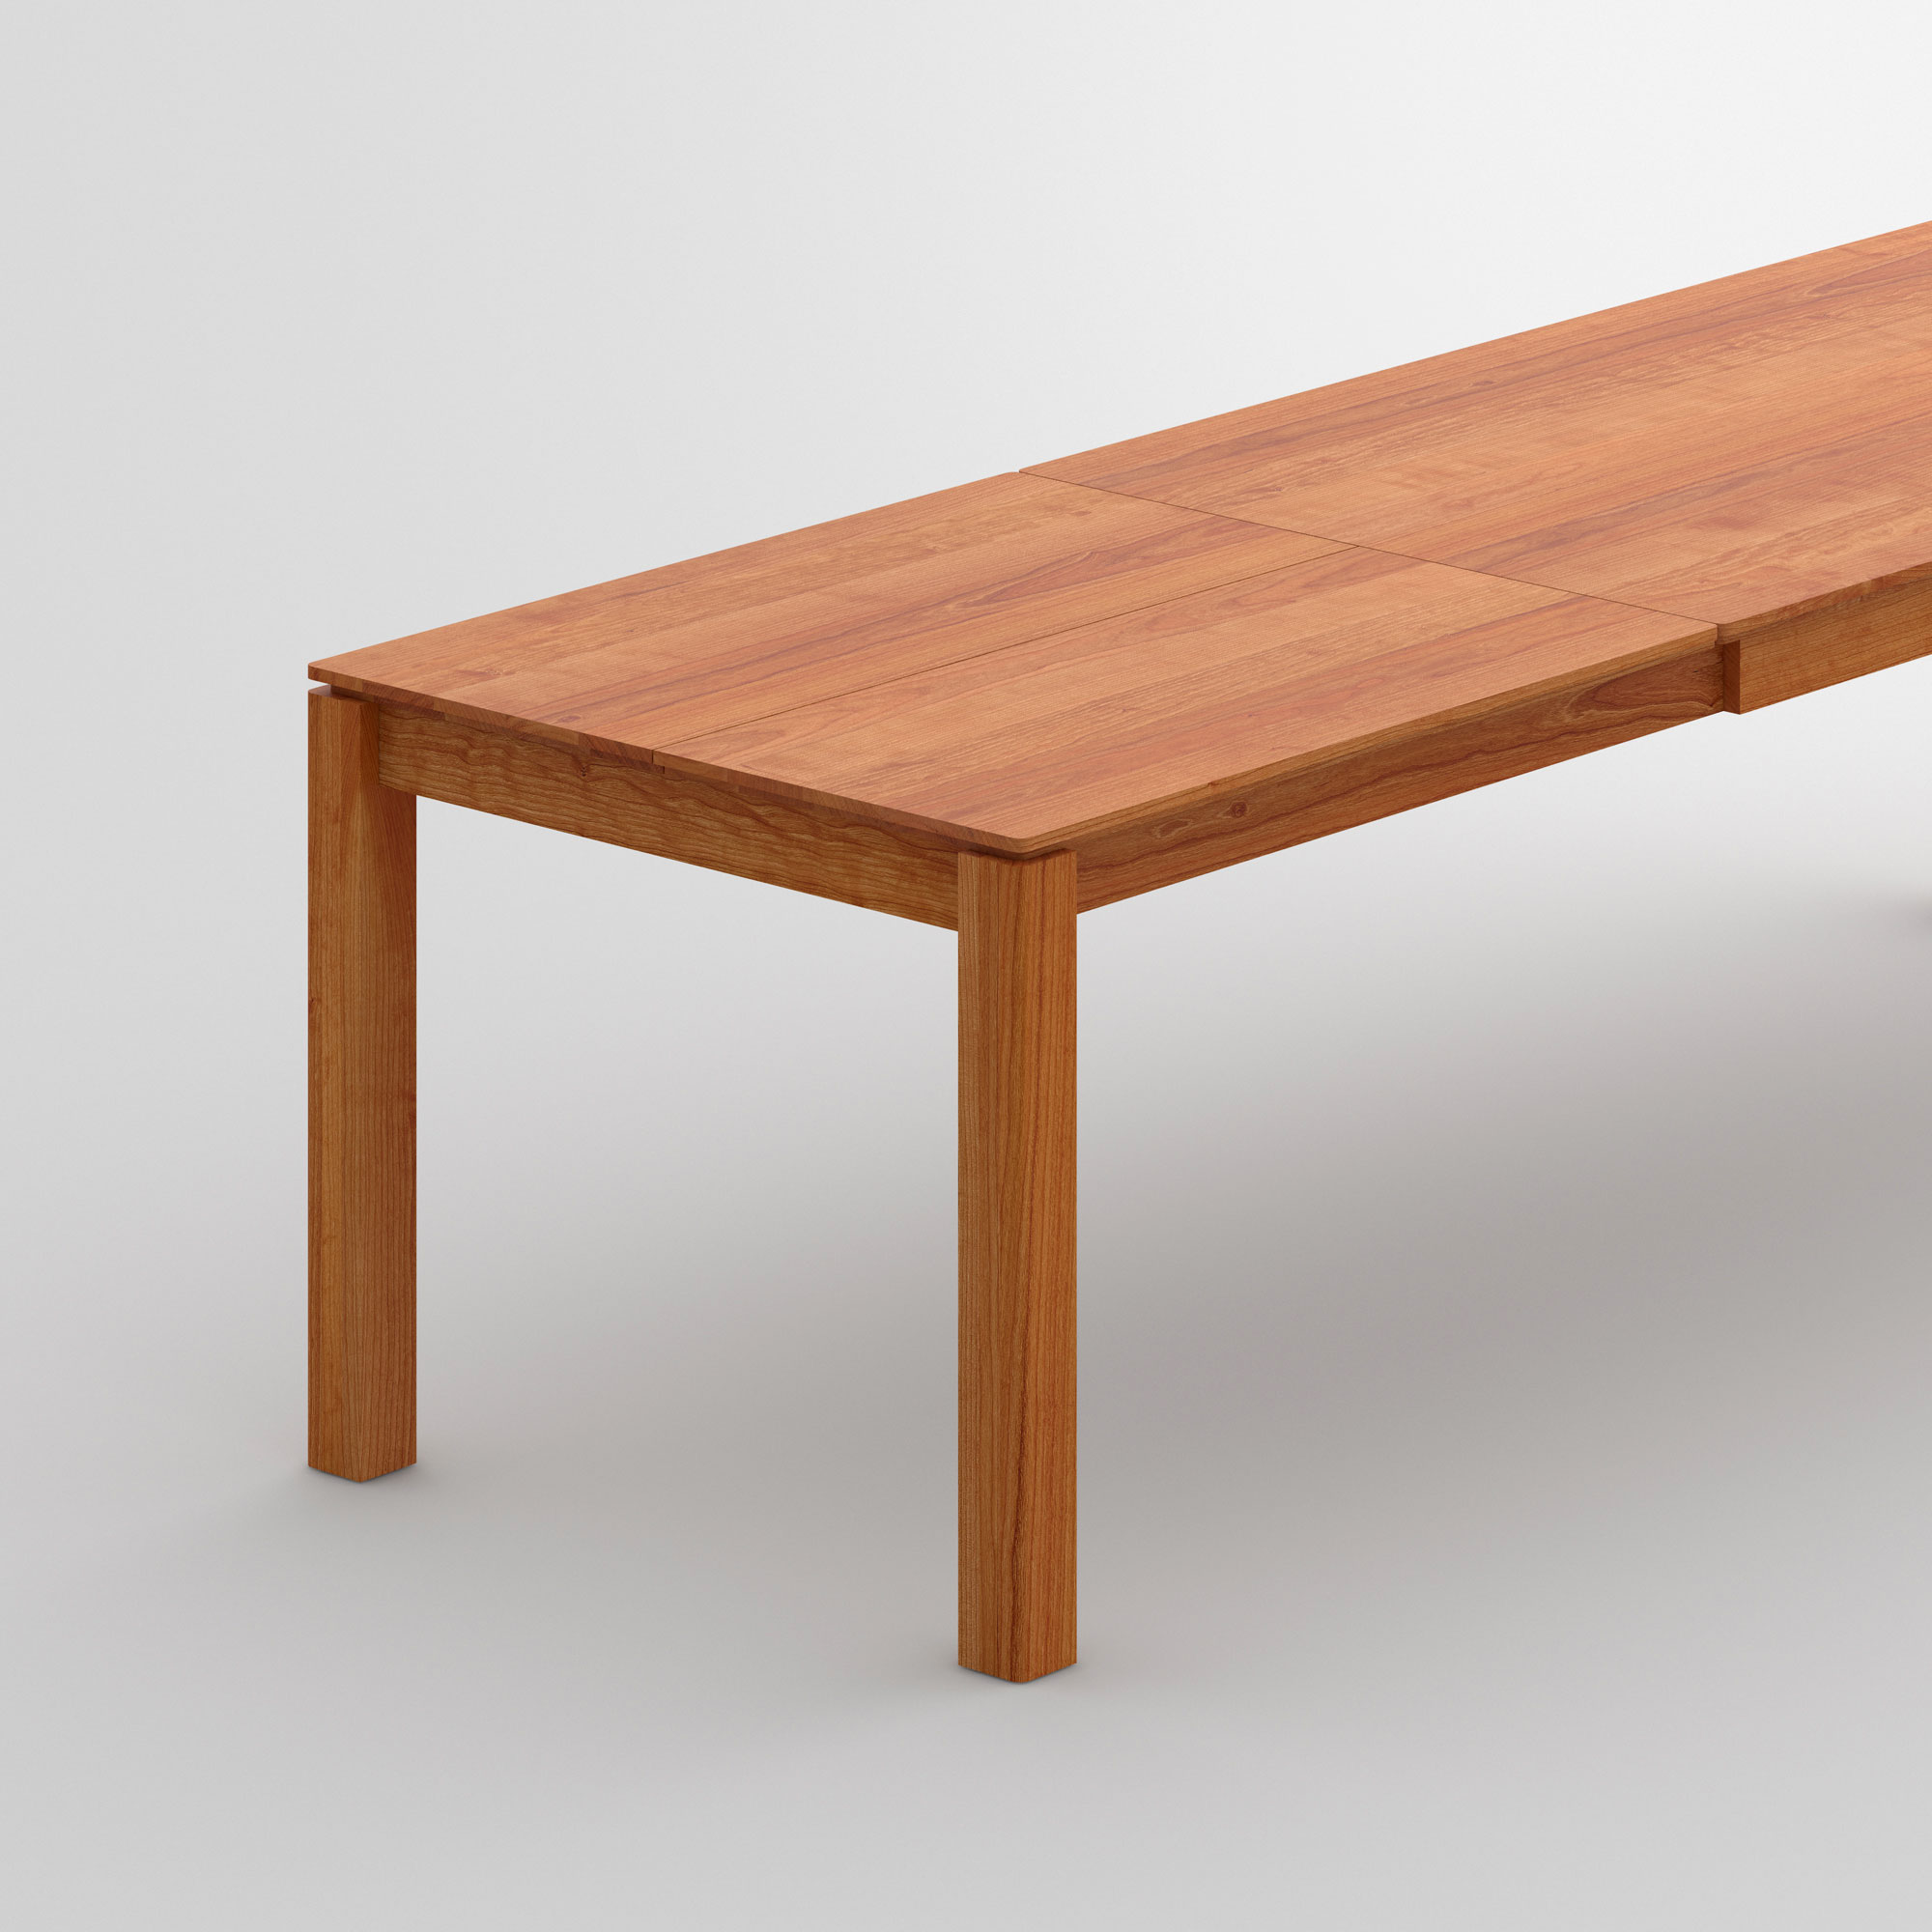 Dining Table Butterfly-System VERSO BUTTERFLY cam1 custom made in solid wood by vitamin design